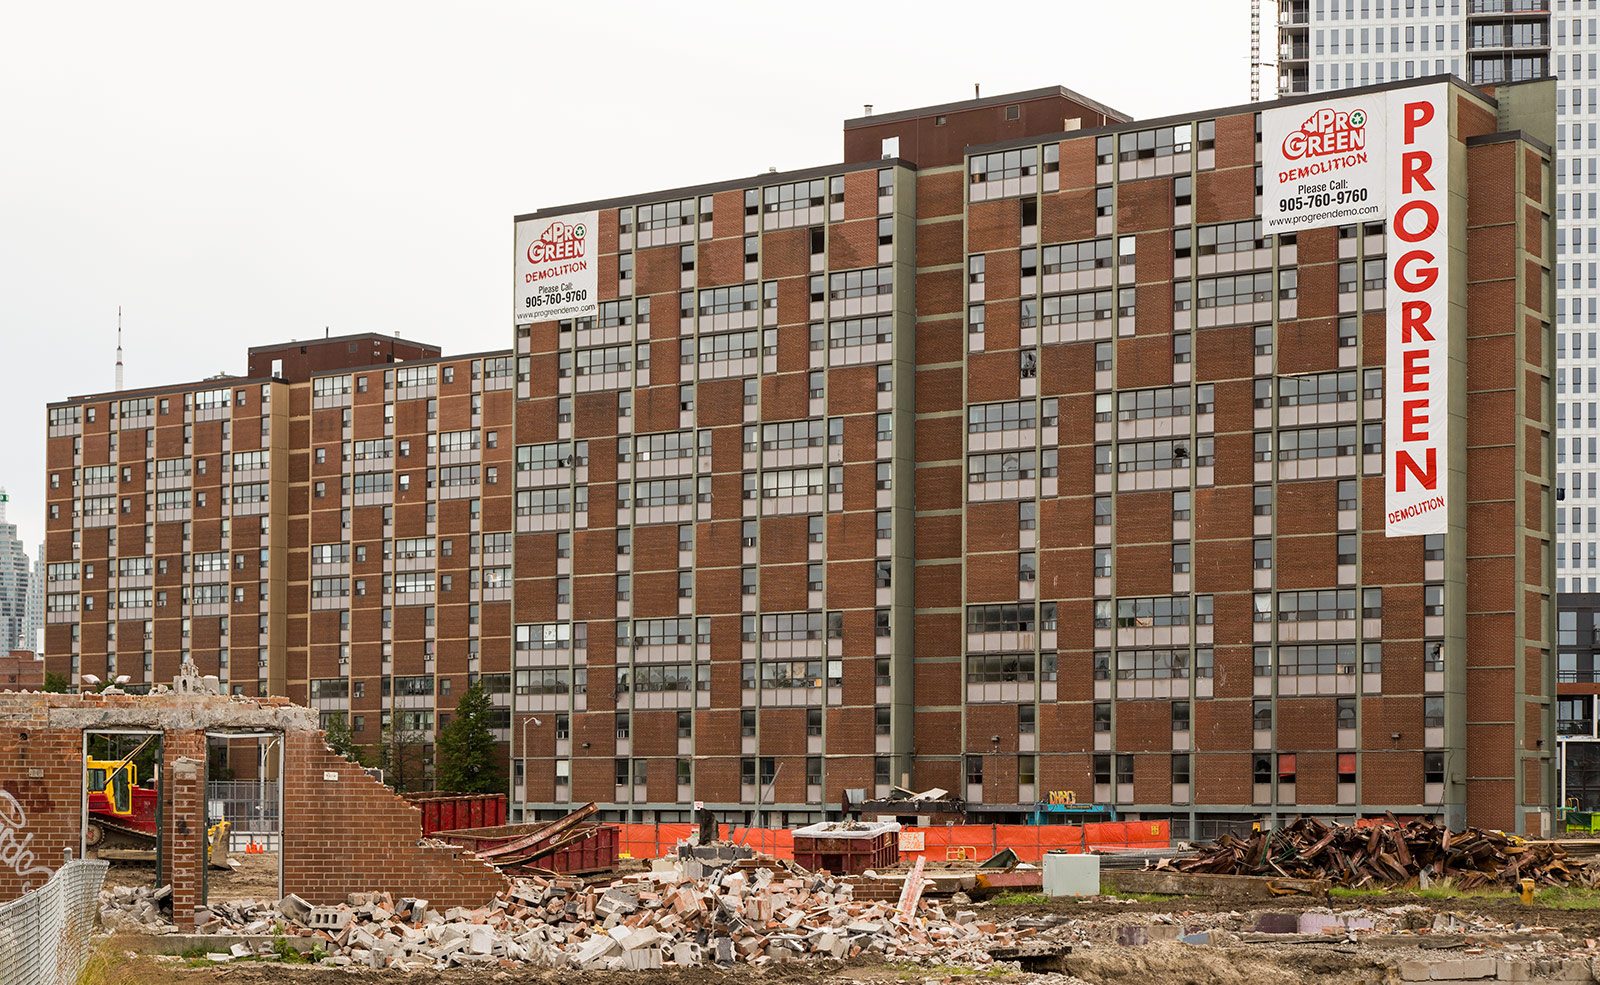 20140622. Phase 3 of Regent Park's redevelopment involves the demolition of a 1958 Peter Dickinson modernist highrise.